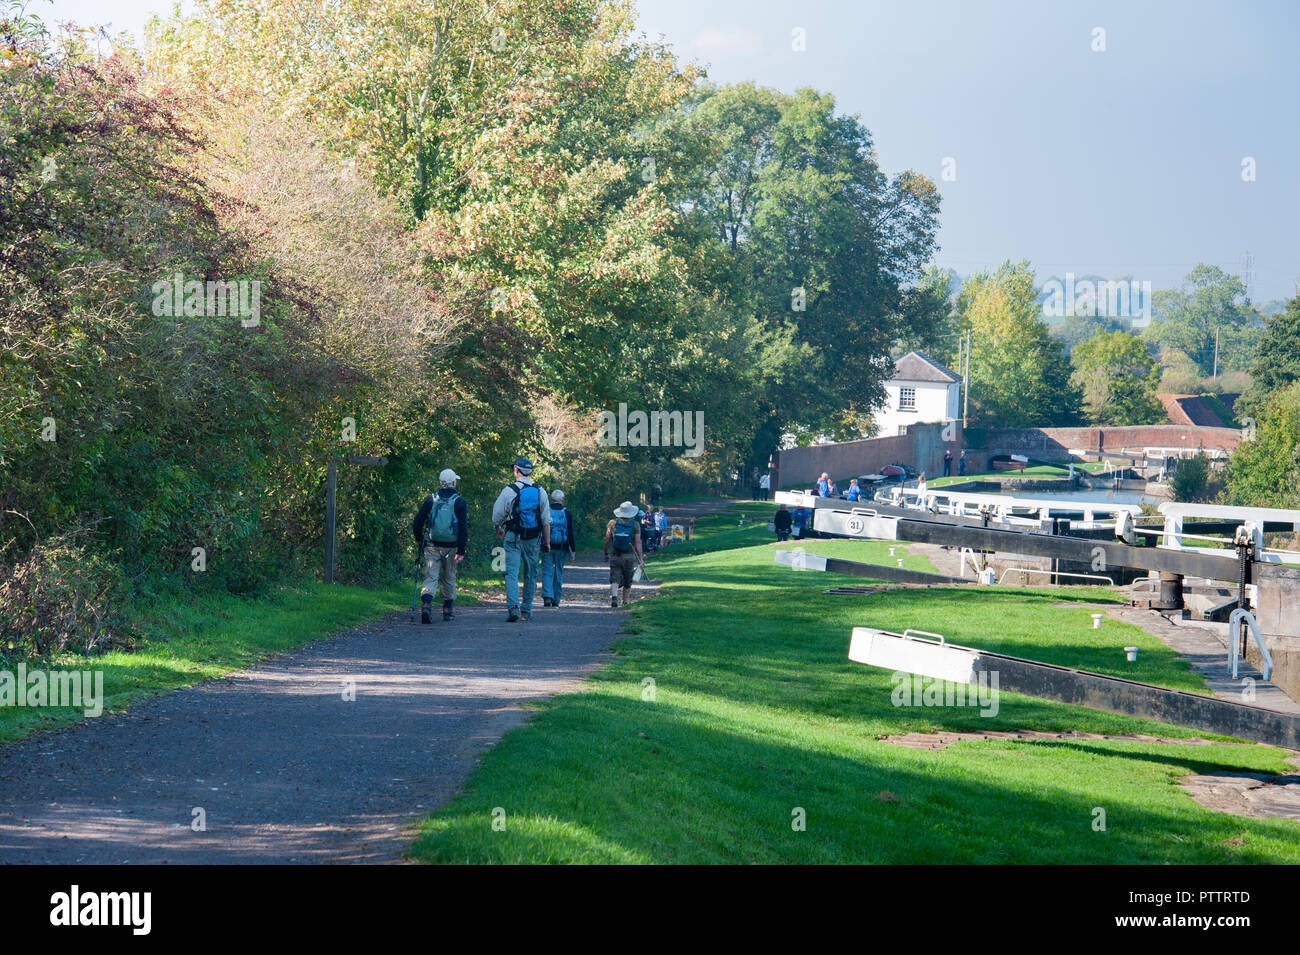 Walkers on the towpath at the Caen Hill Flight on the Kennet and Avon Canal, Devizes, Wiltshire, UK. - Stock Image